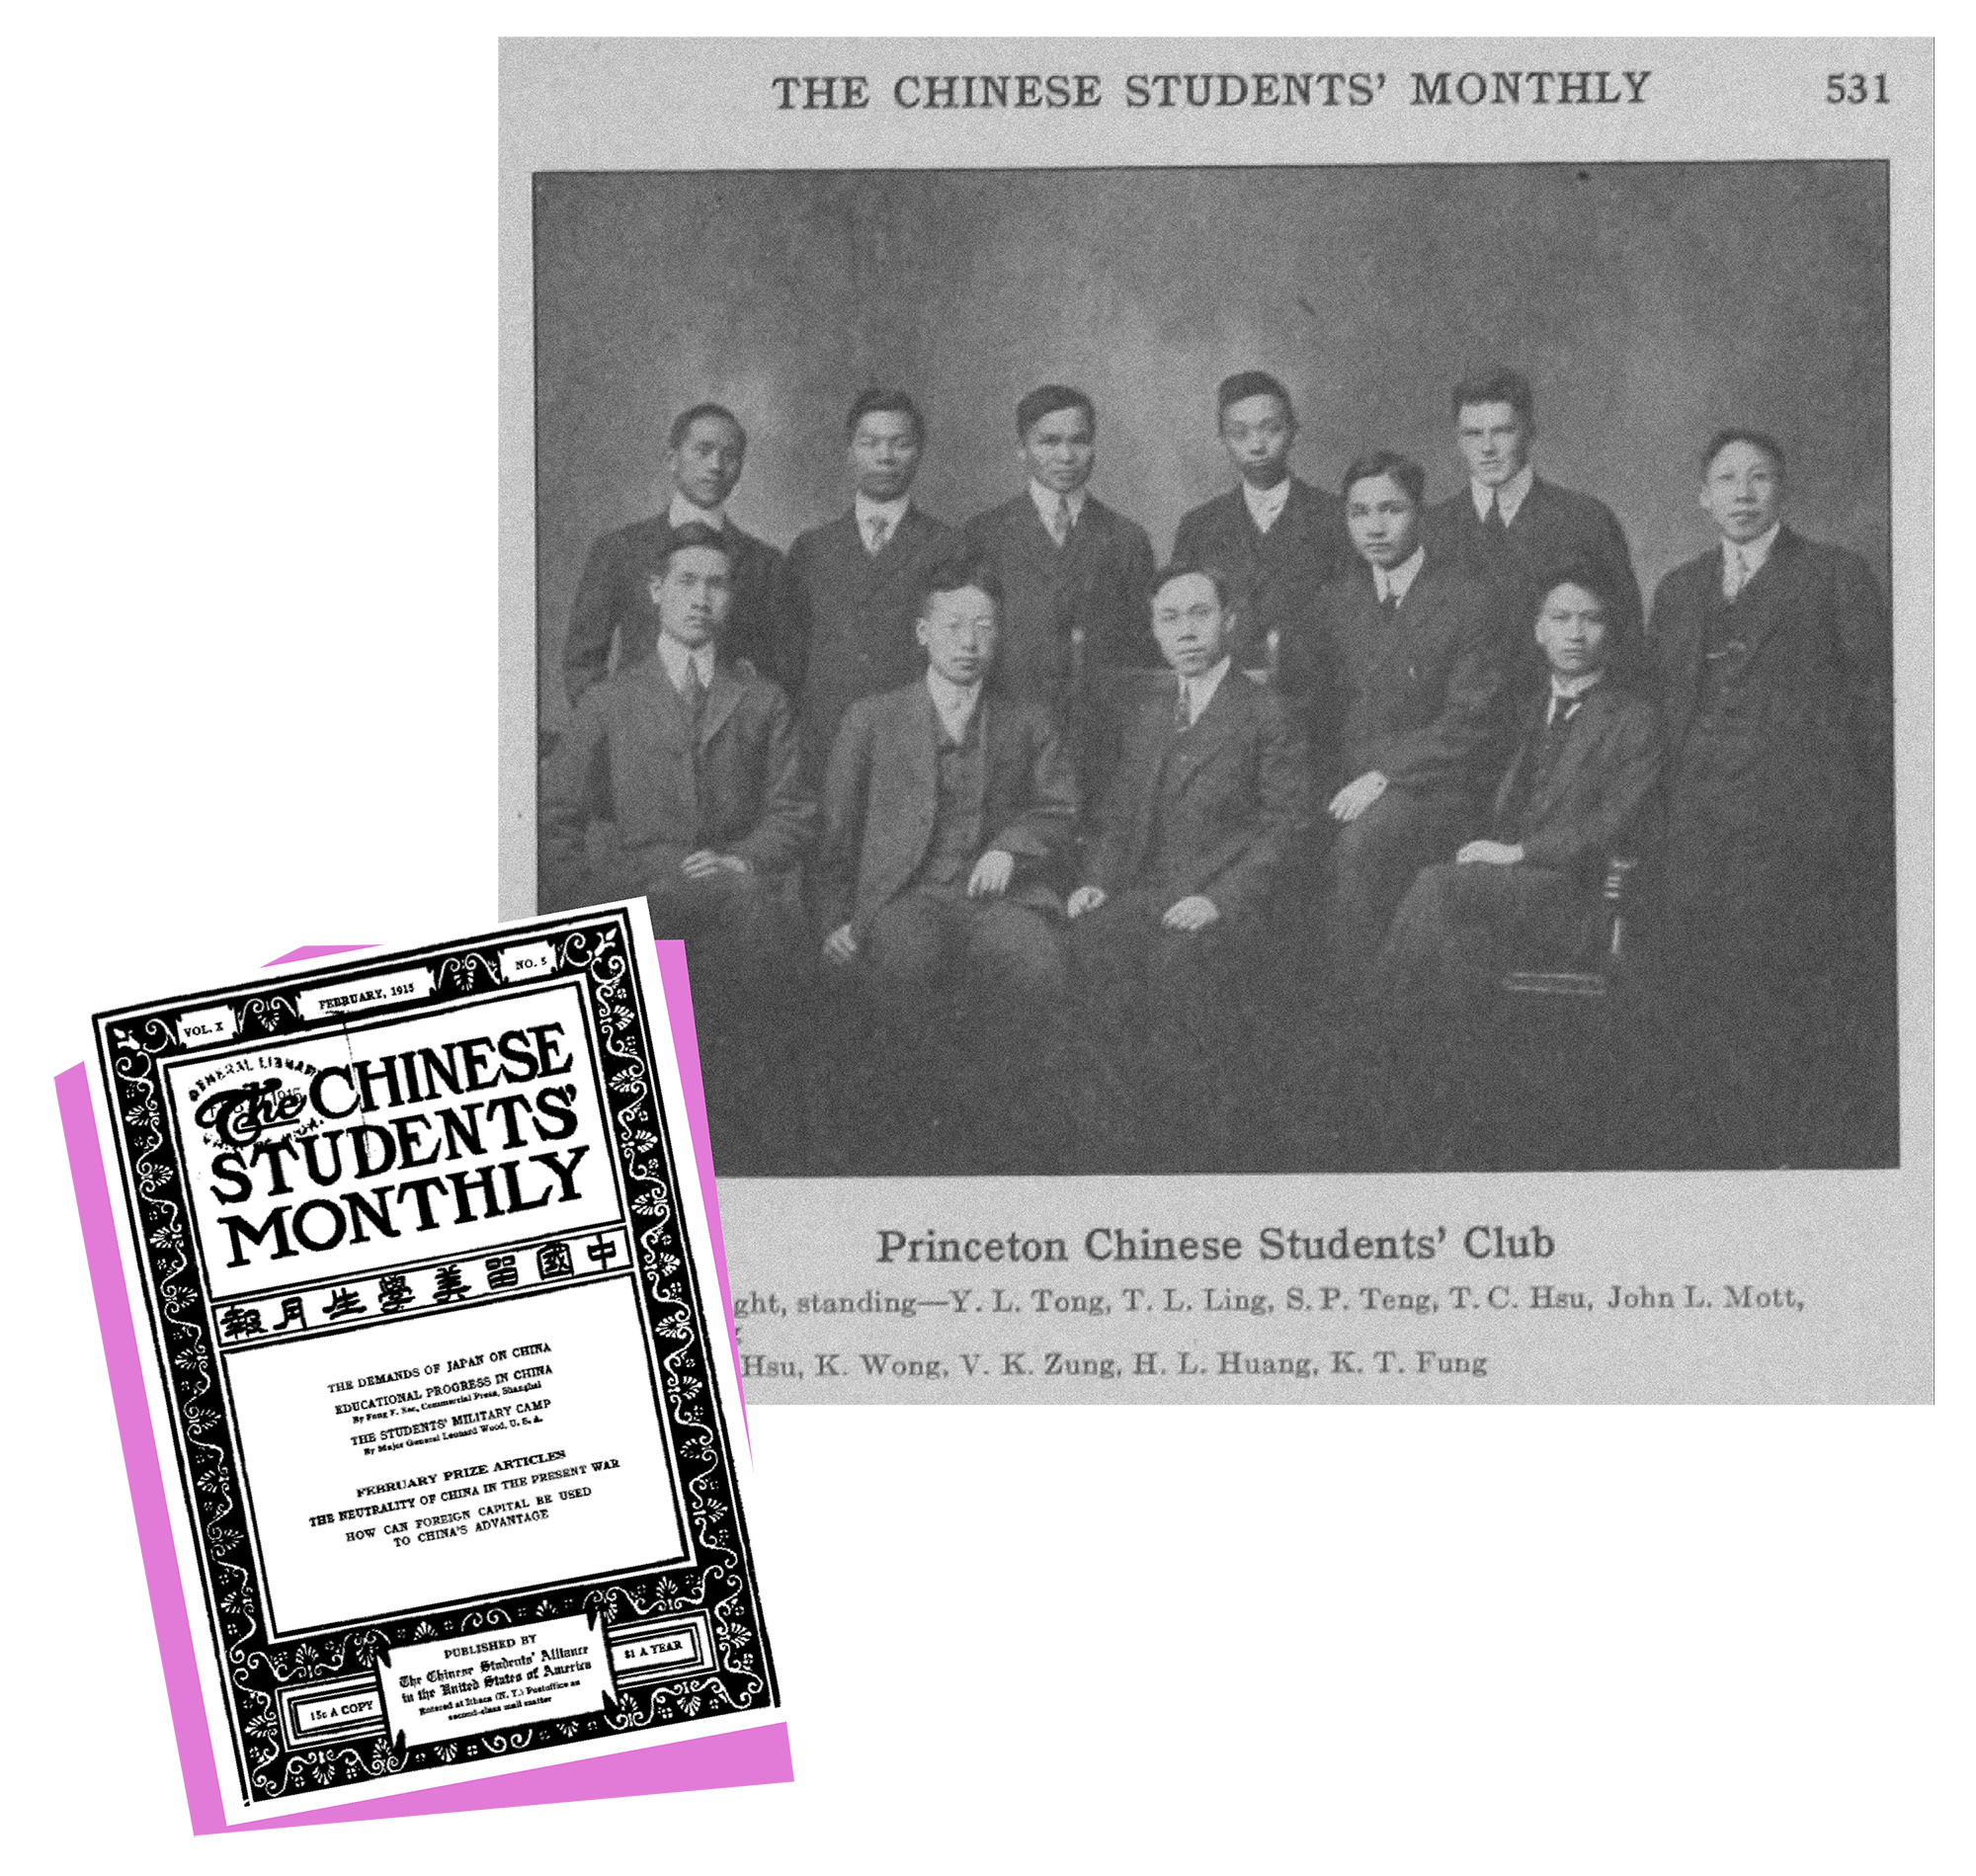 1915 issue of the Chinese Students' Monthly newspaper. Six members of the Princeton Chinese Students' Club in 1915.